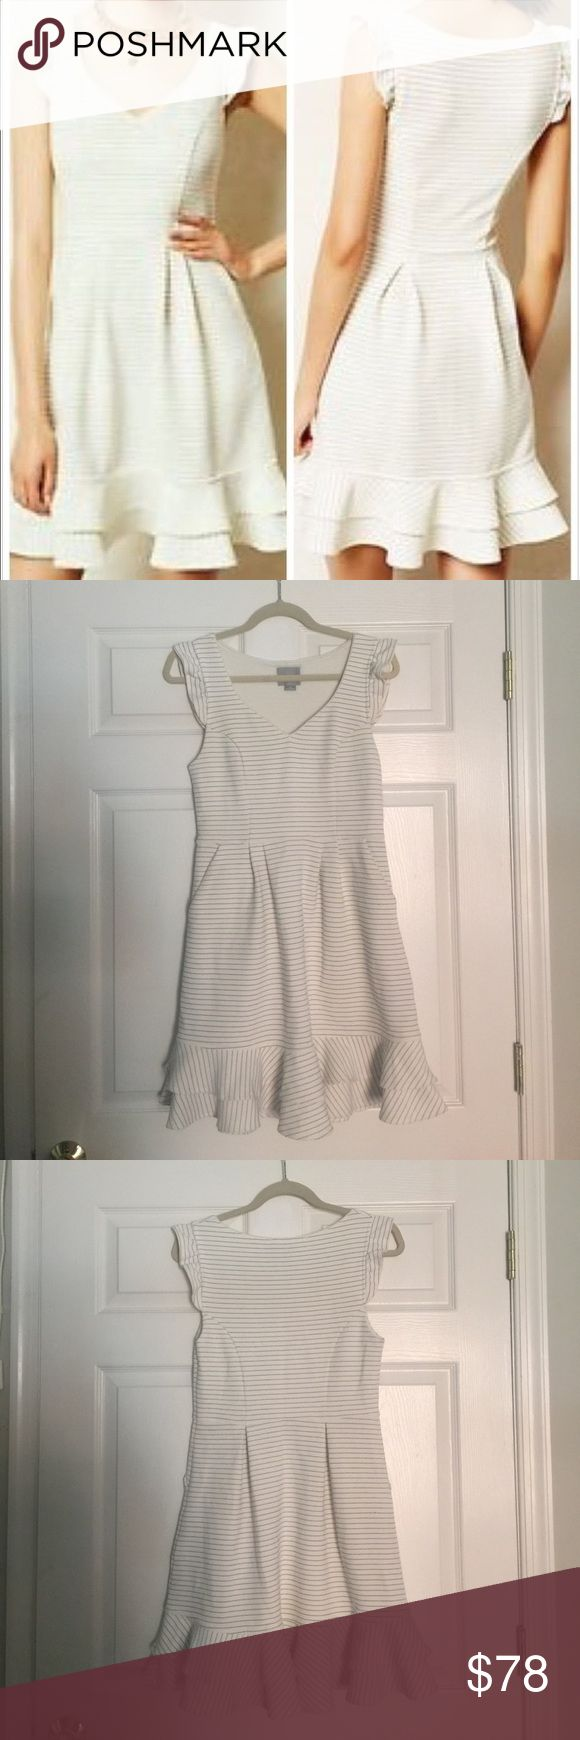 White Maeve dress White with gray pin stripes. Sweet ruffle details at the hem and shoulders. Structured fabric is very breathable but easy to wear. Slightly stretchy. Only worn twice. Great for graduations, summer night outs, and throwing in your bag for spontaneous travel Anthropologie Dresses